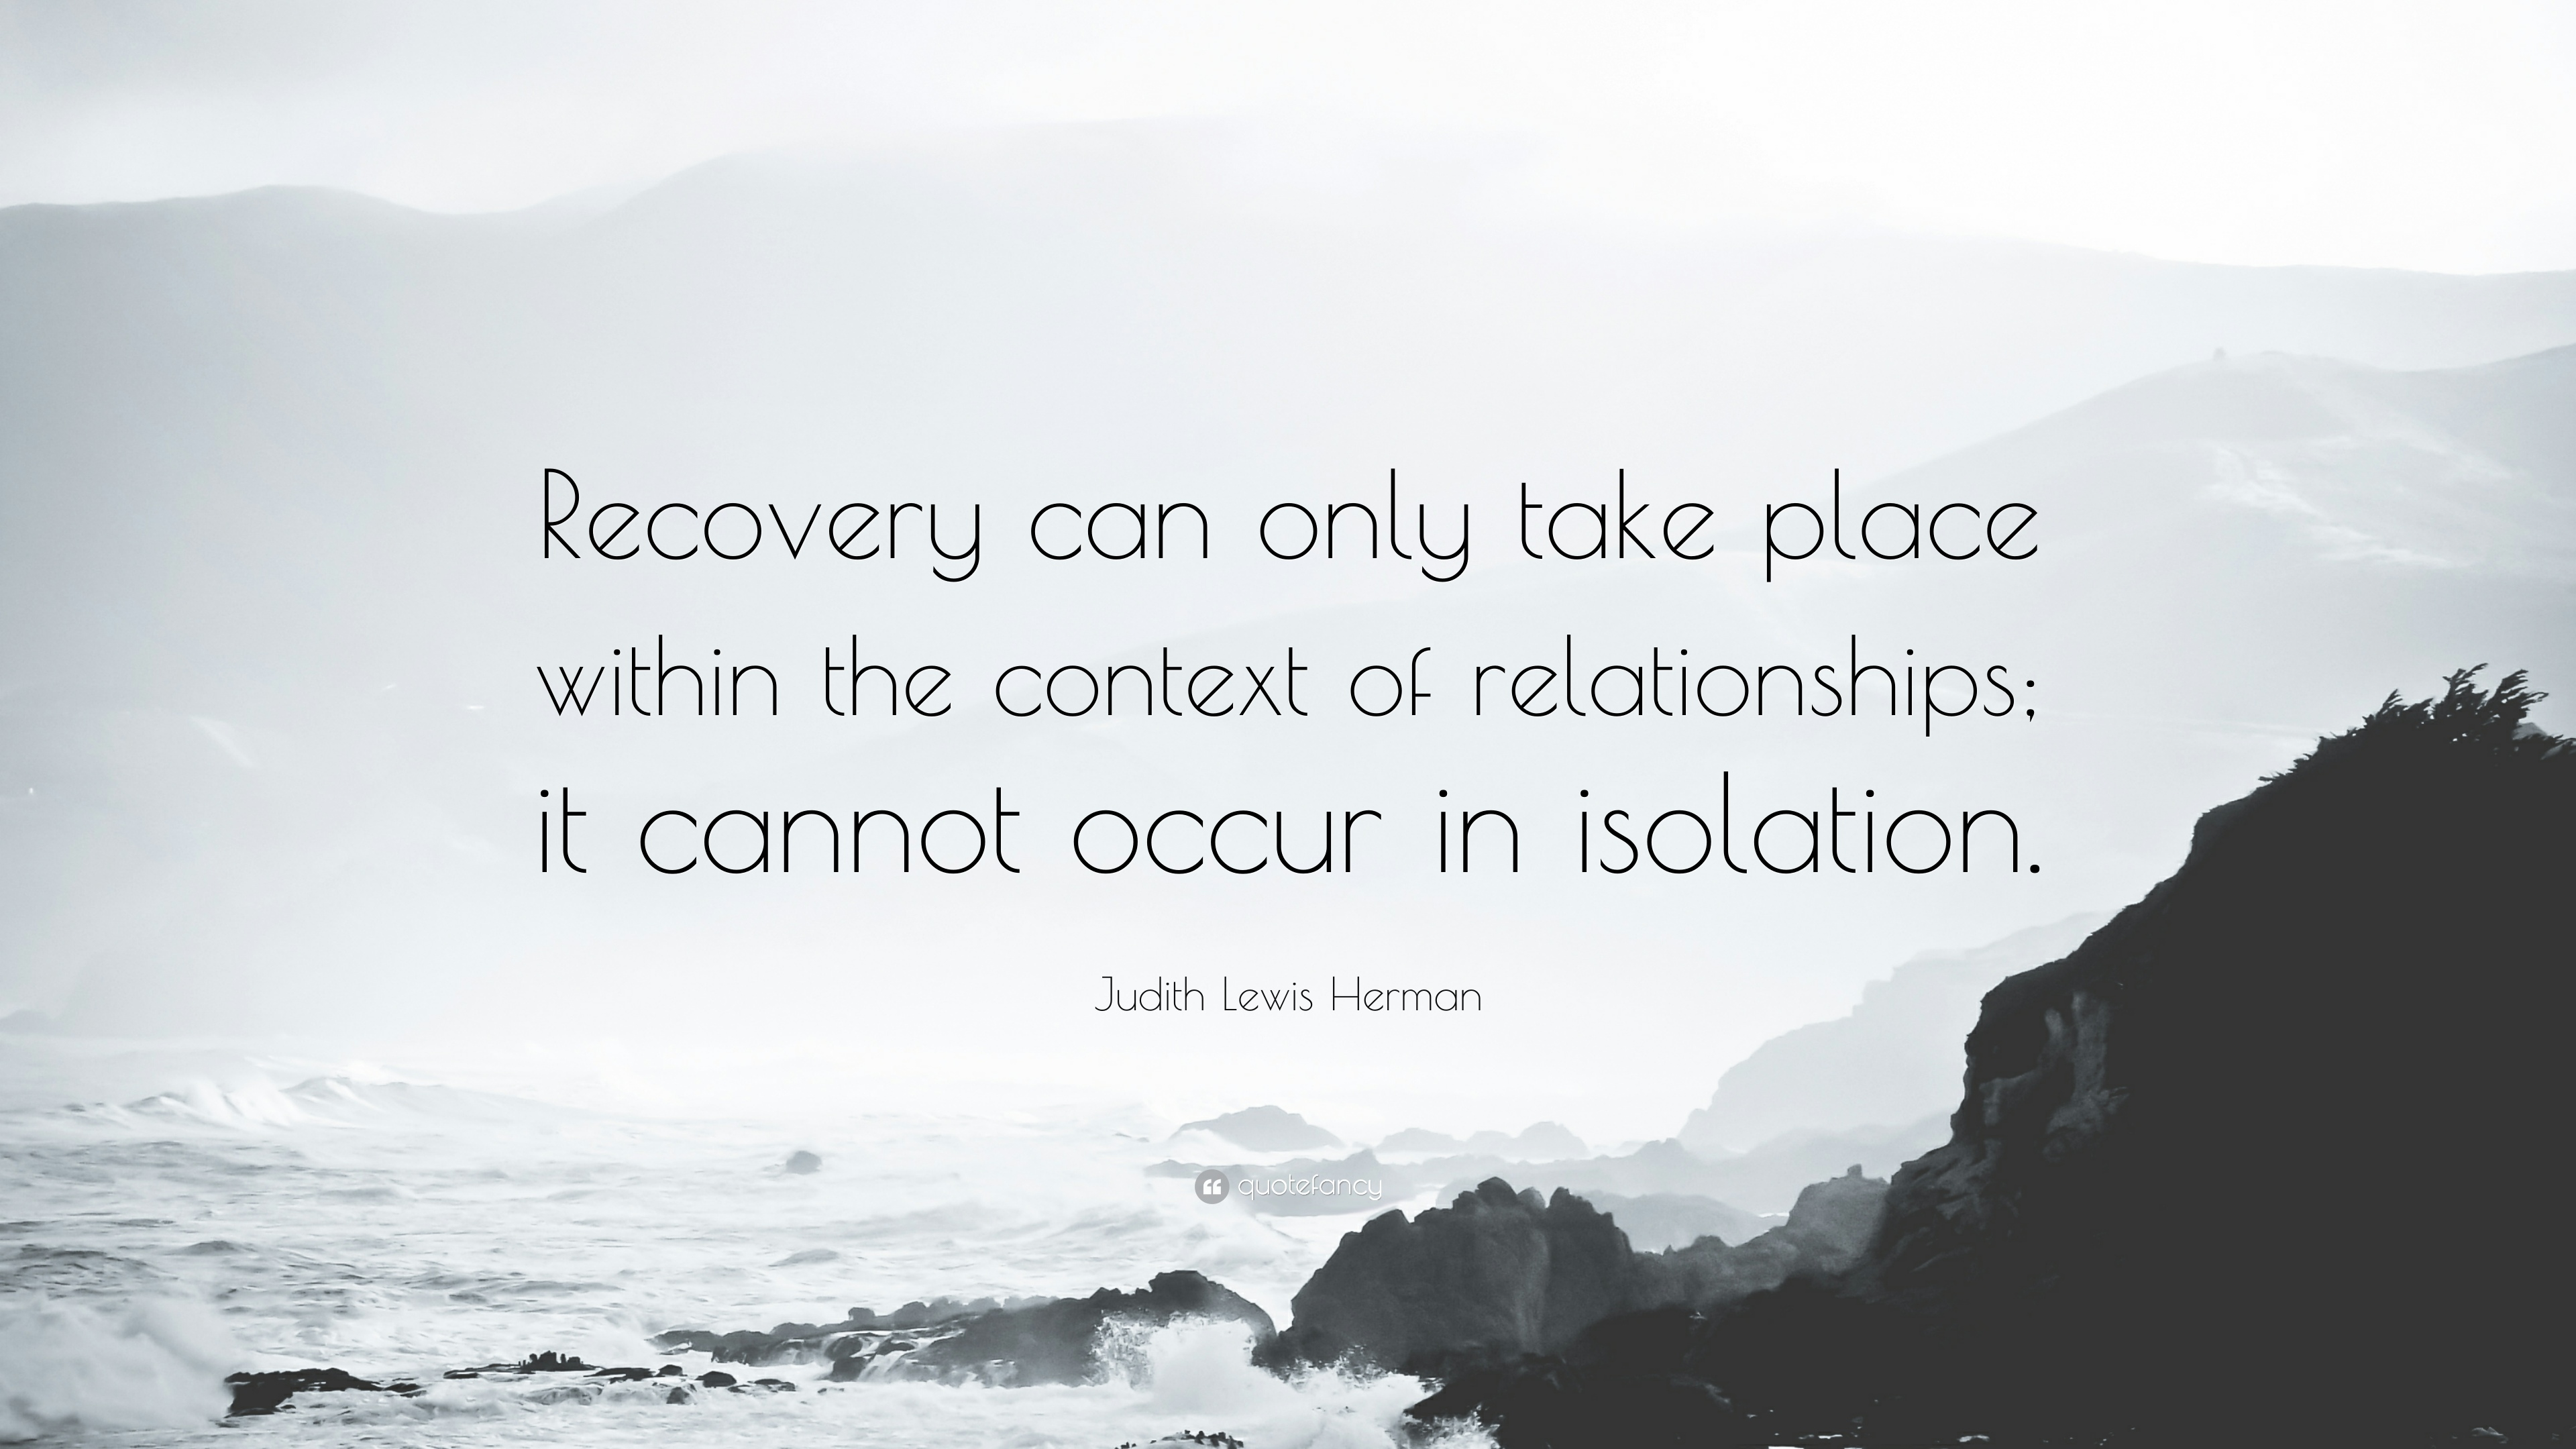 Quotes About Recovery Judith Lewis Herman Quotes 6 Wallpapers  Quotefancy